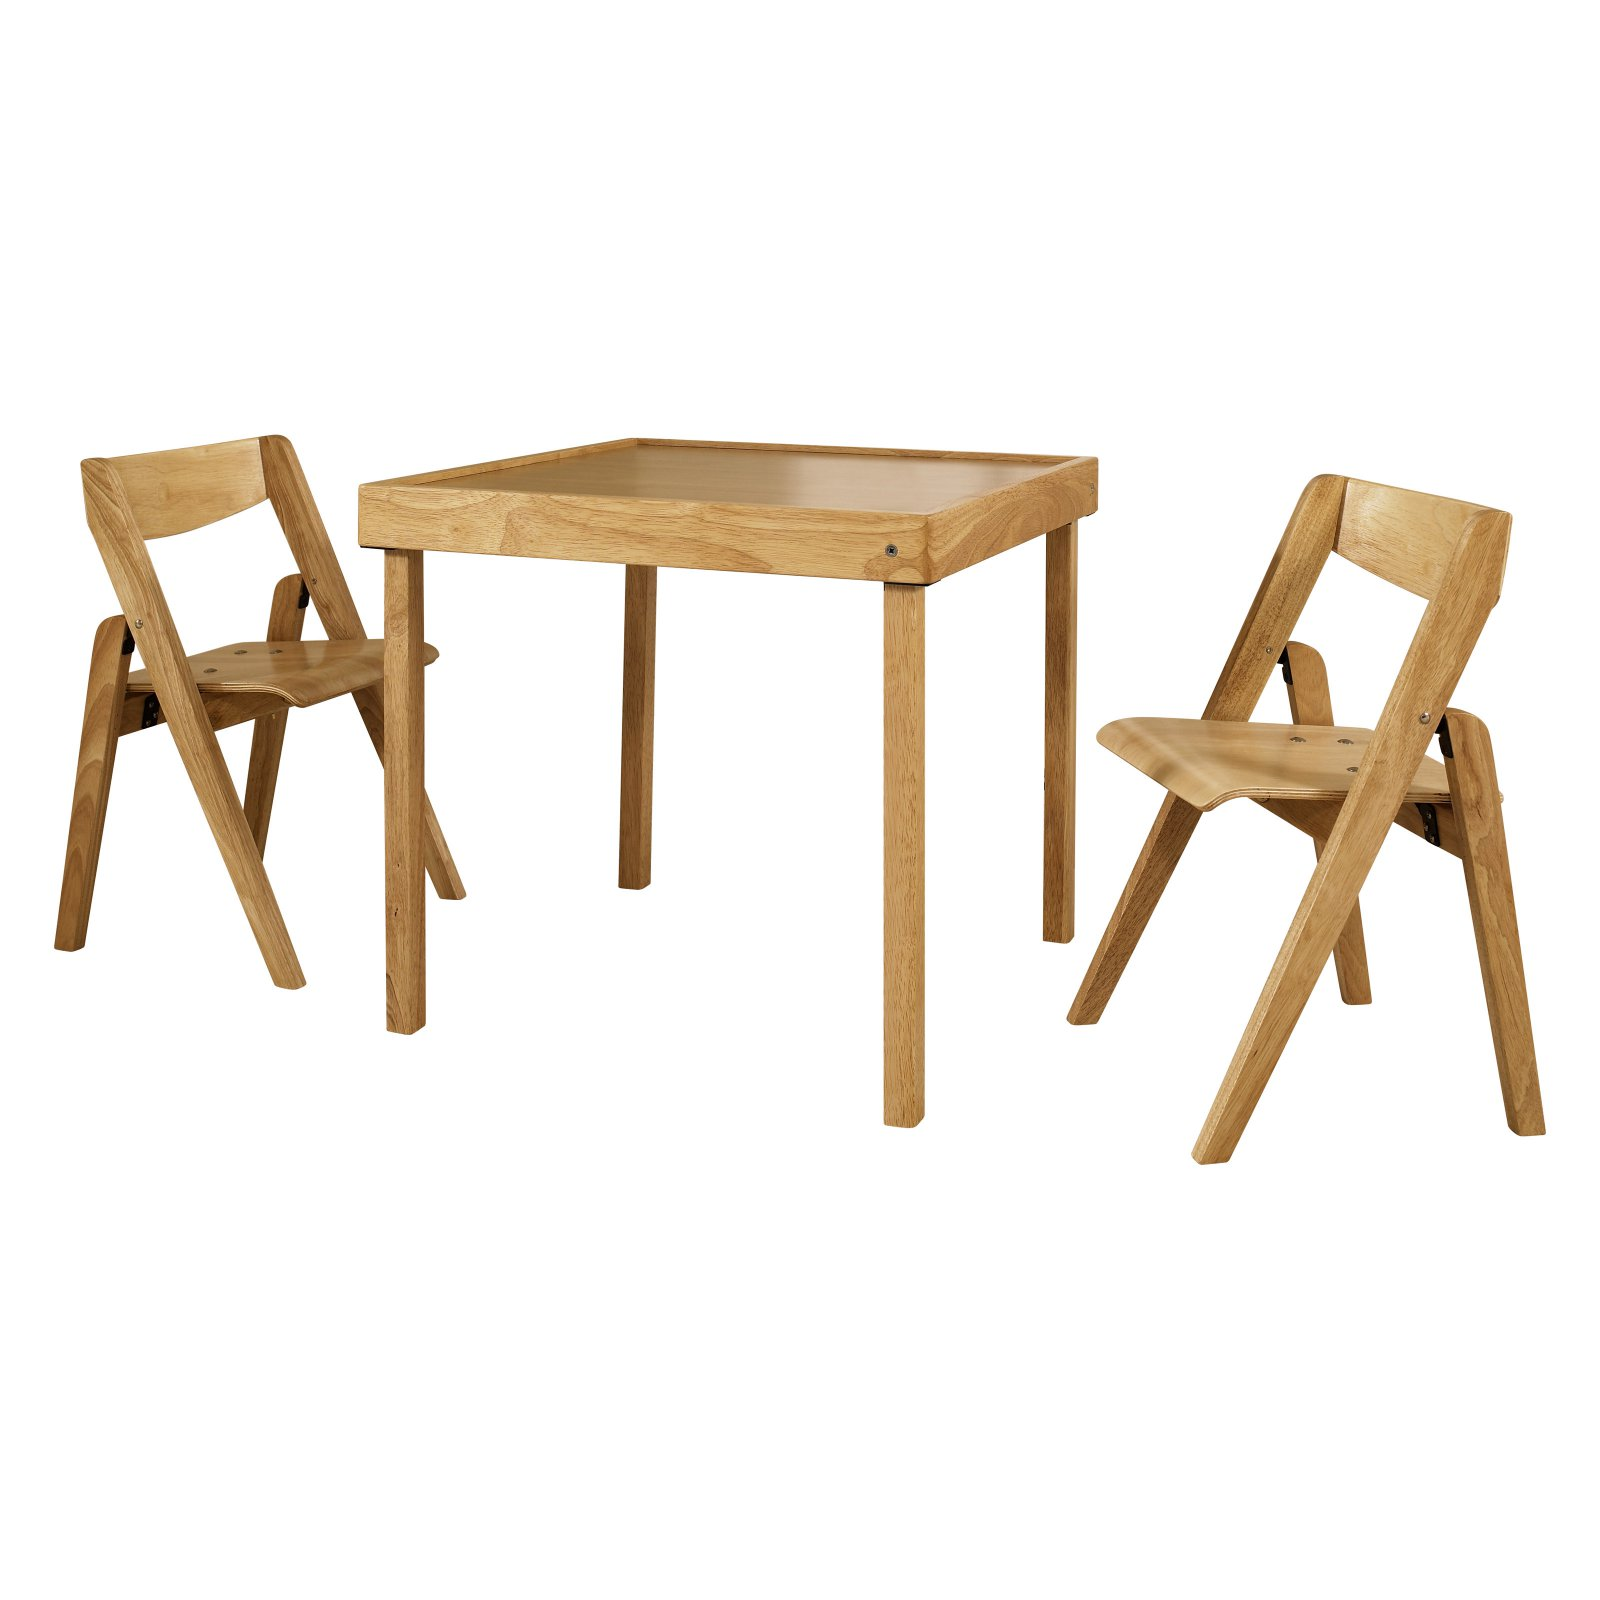 Stakmore Juvenile Folding 3 Piece Table And Chair Set Kids Table